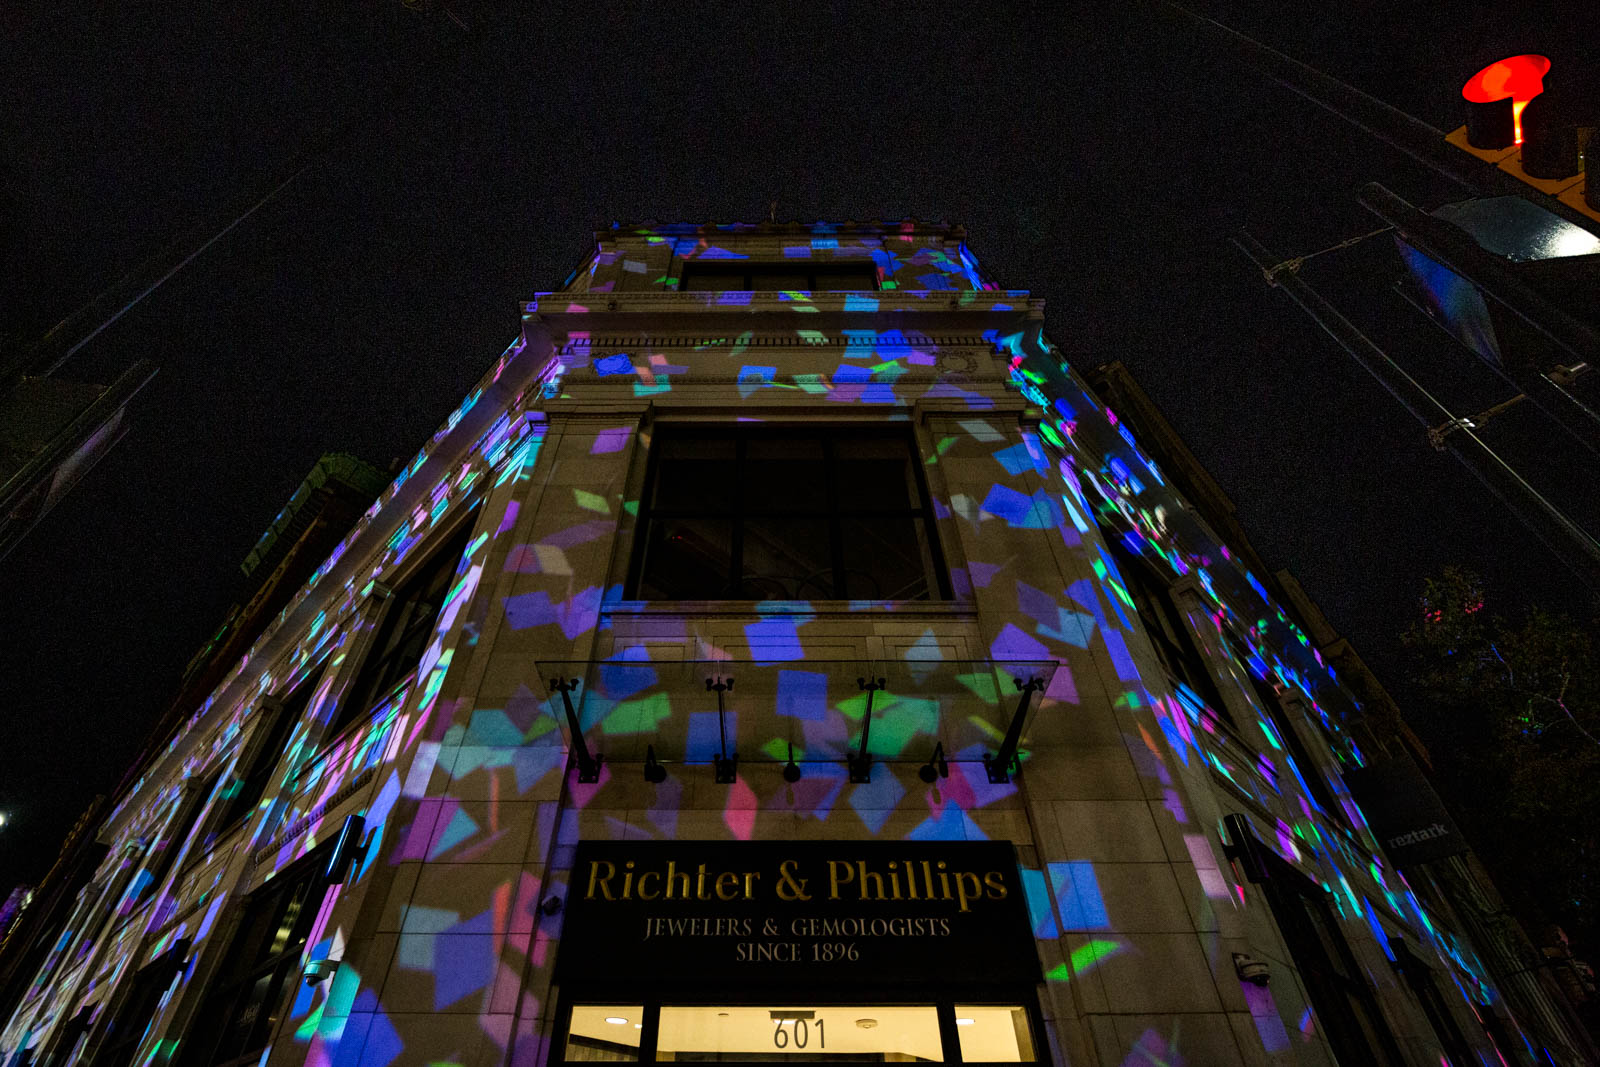 PICTURED NEIGHBORHOOD: Downtown / The building at the corner of 6th and Main Streets was lit up for BLINK this time. / Image: Catherine Viox // Published: 10.12.19